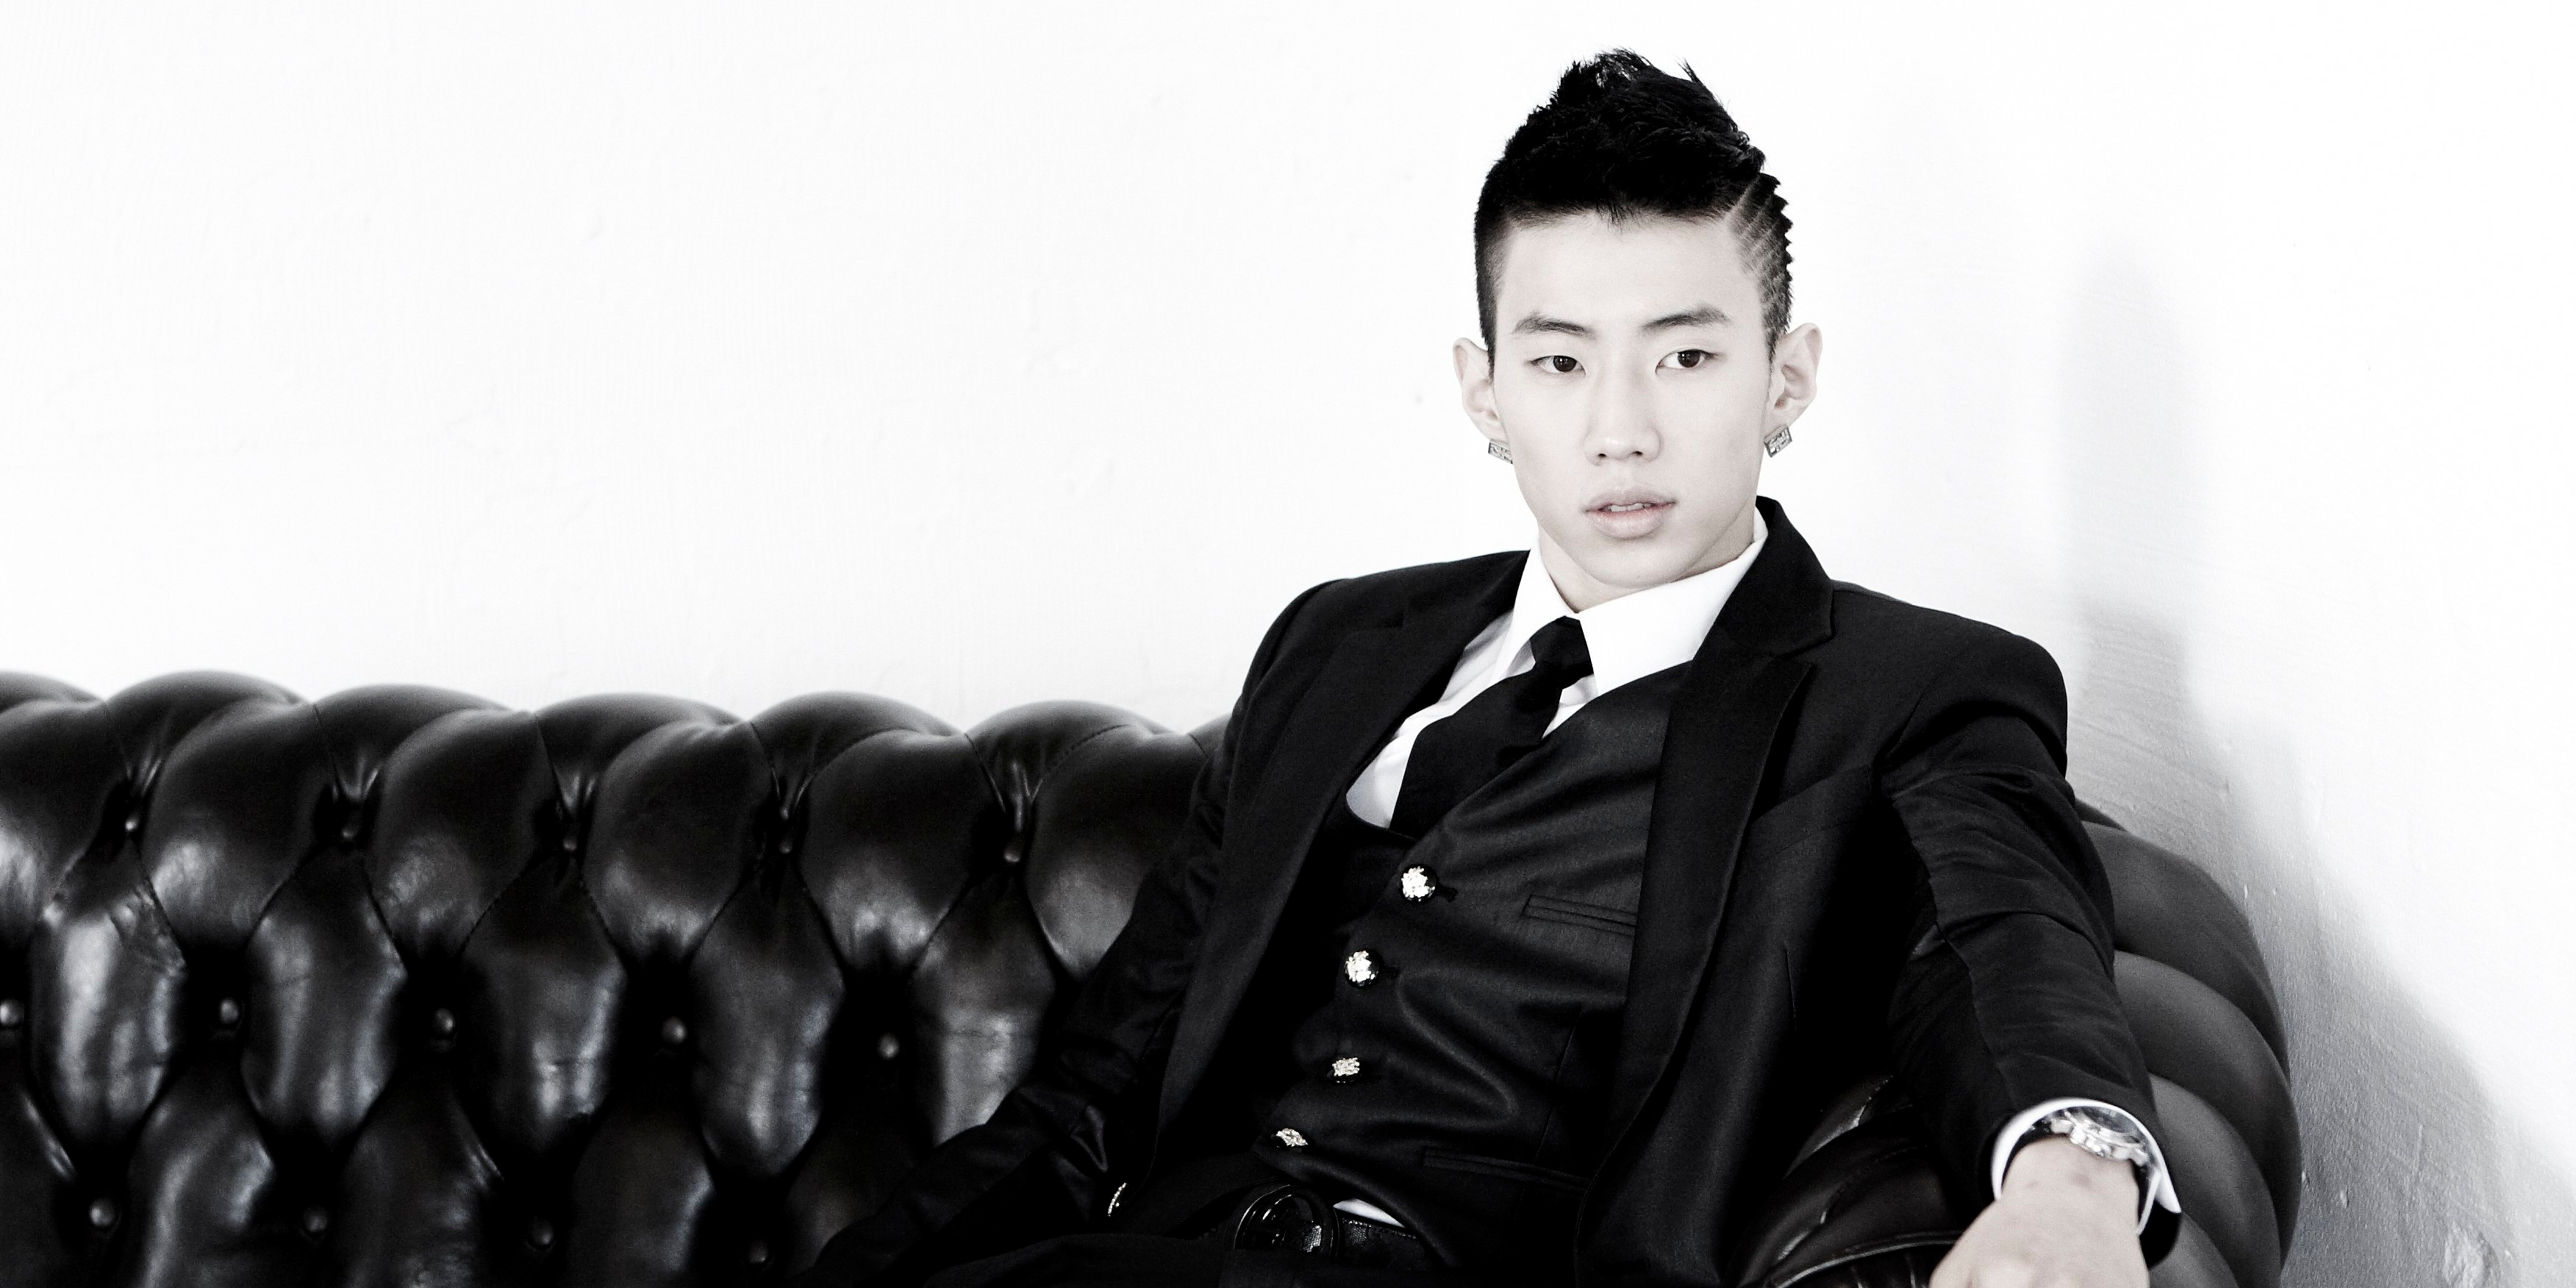 Jay Park leads SHINE Festival line-up with Gentle Bones, ShiGGa Shay and more